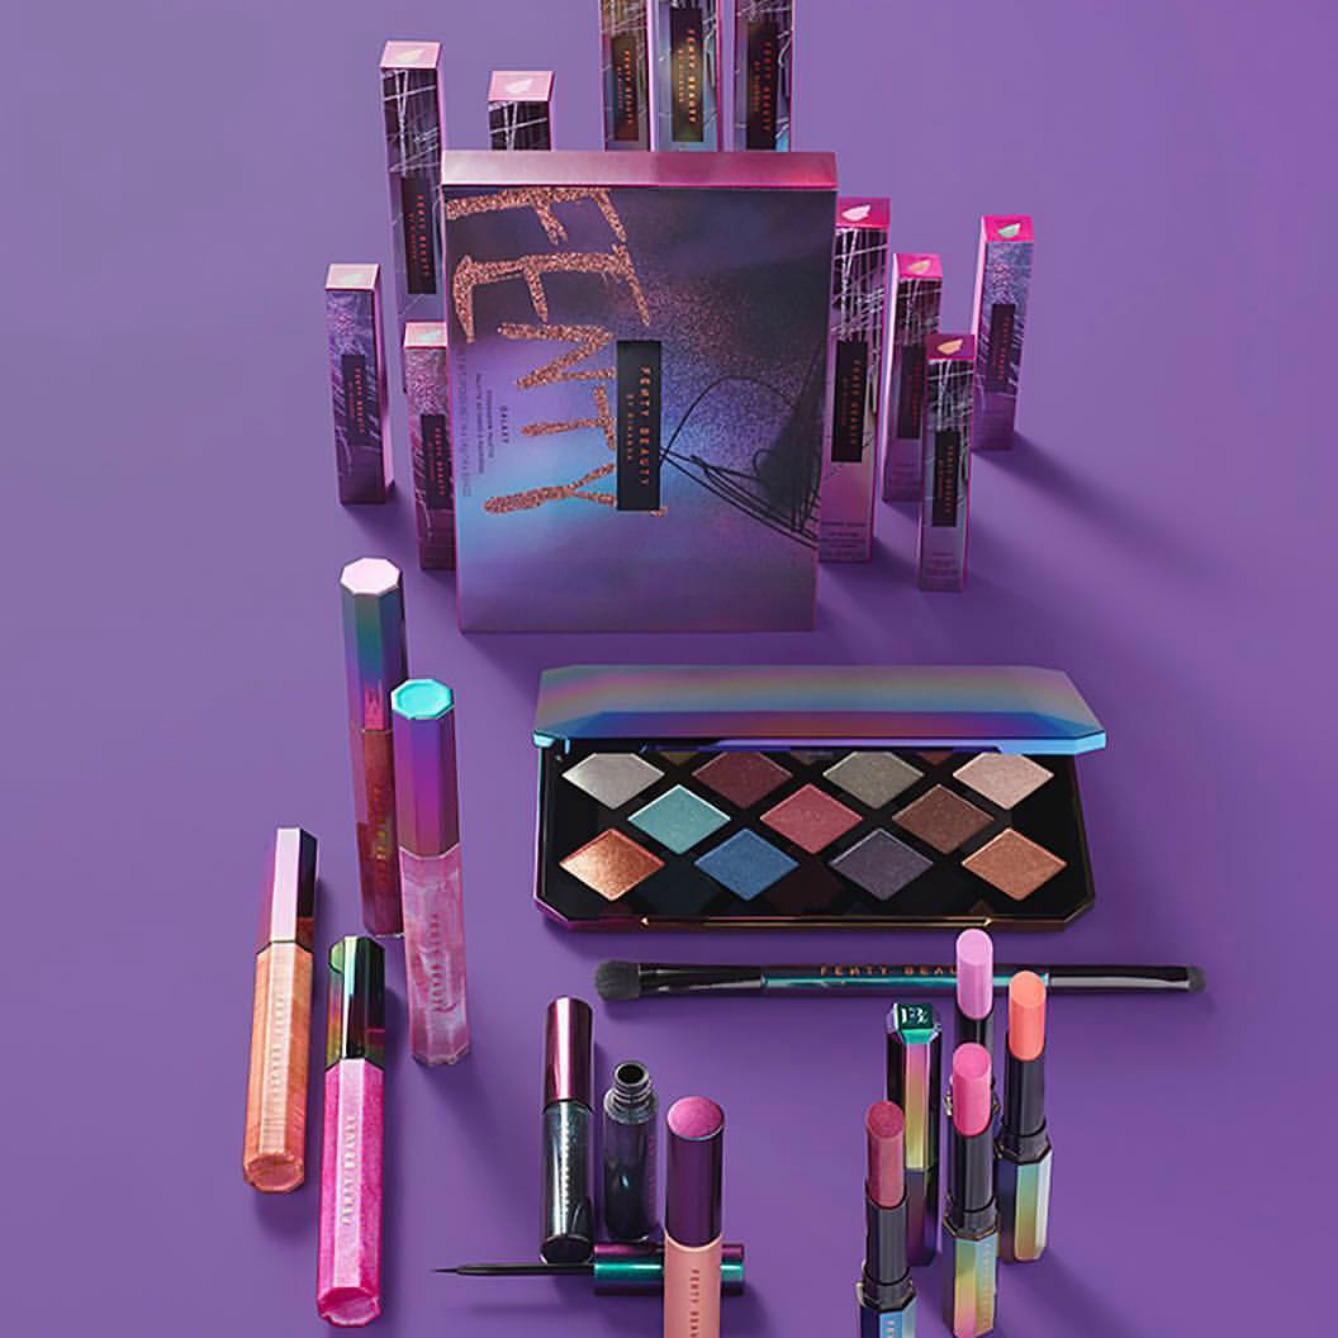 Fenty Beauty's Holiday Collection is Unreal